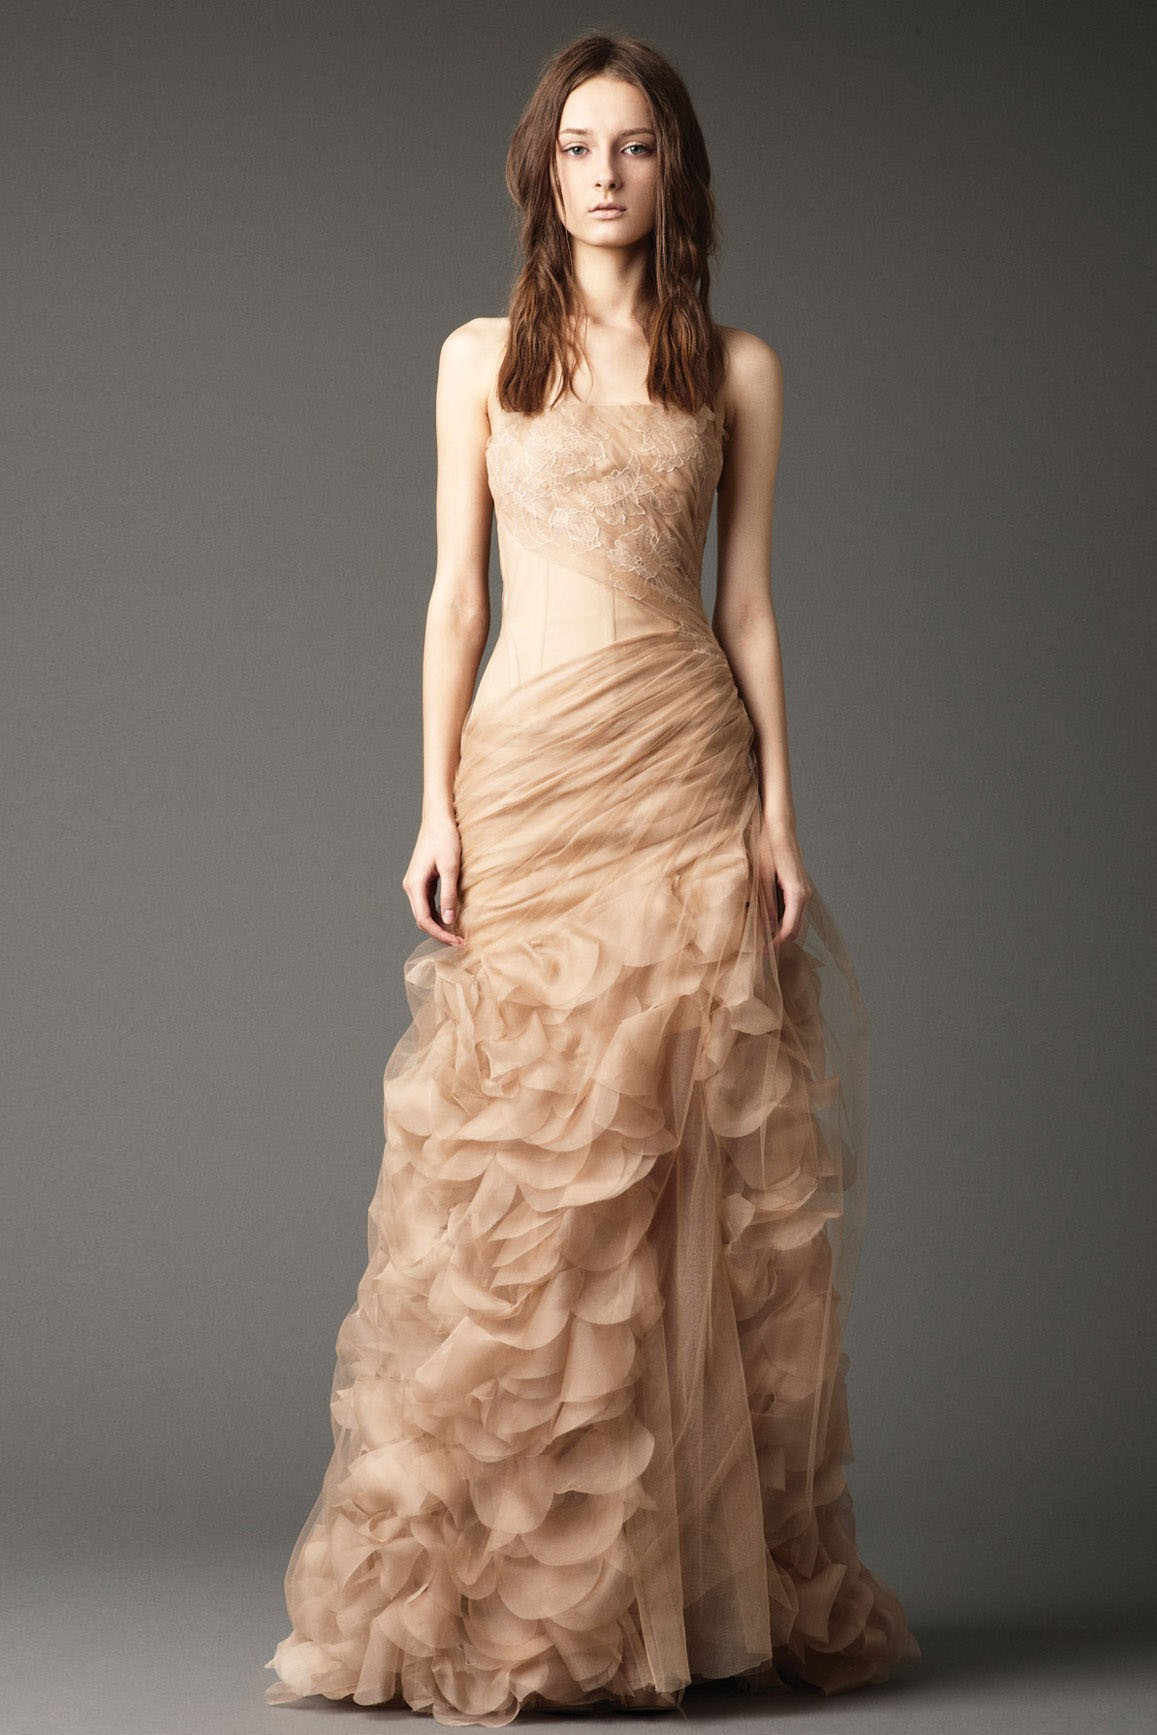 Champagne colored dresses dressed up girl for Wedding dresses in color